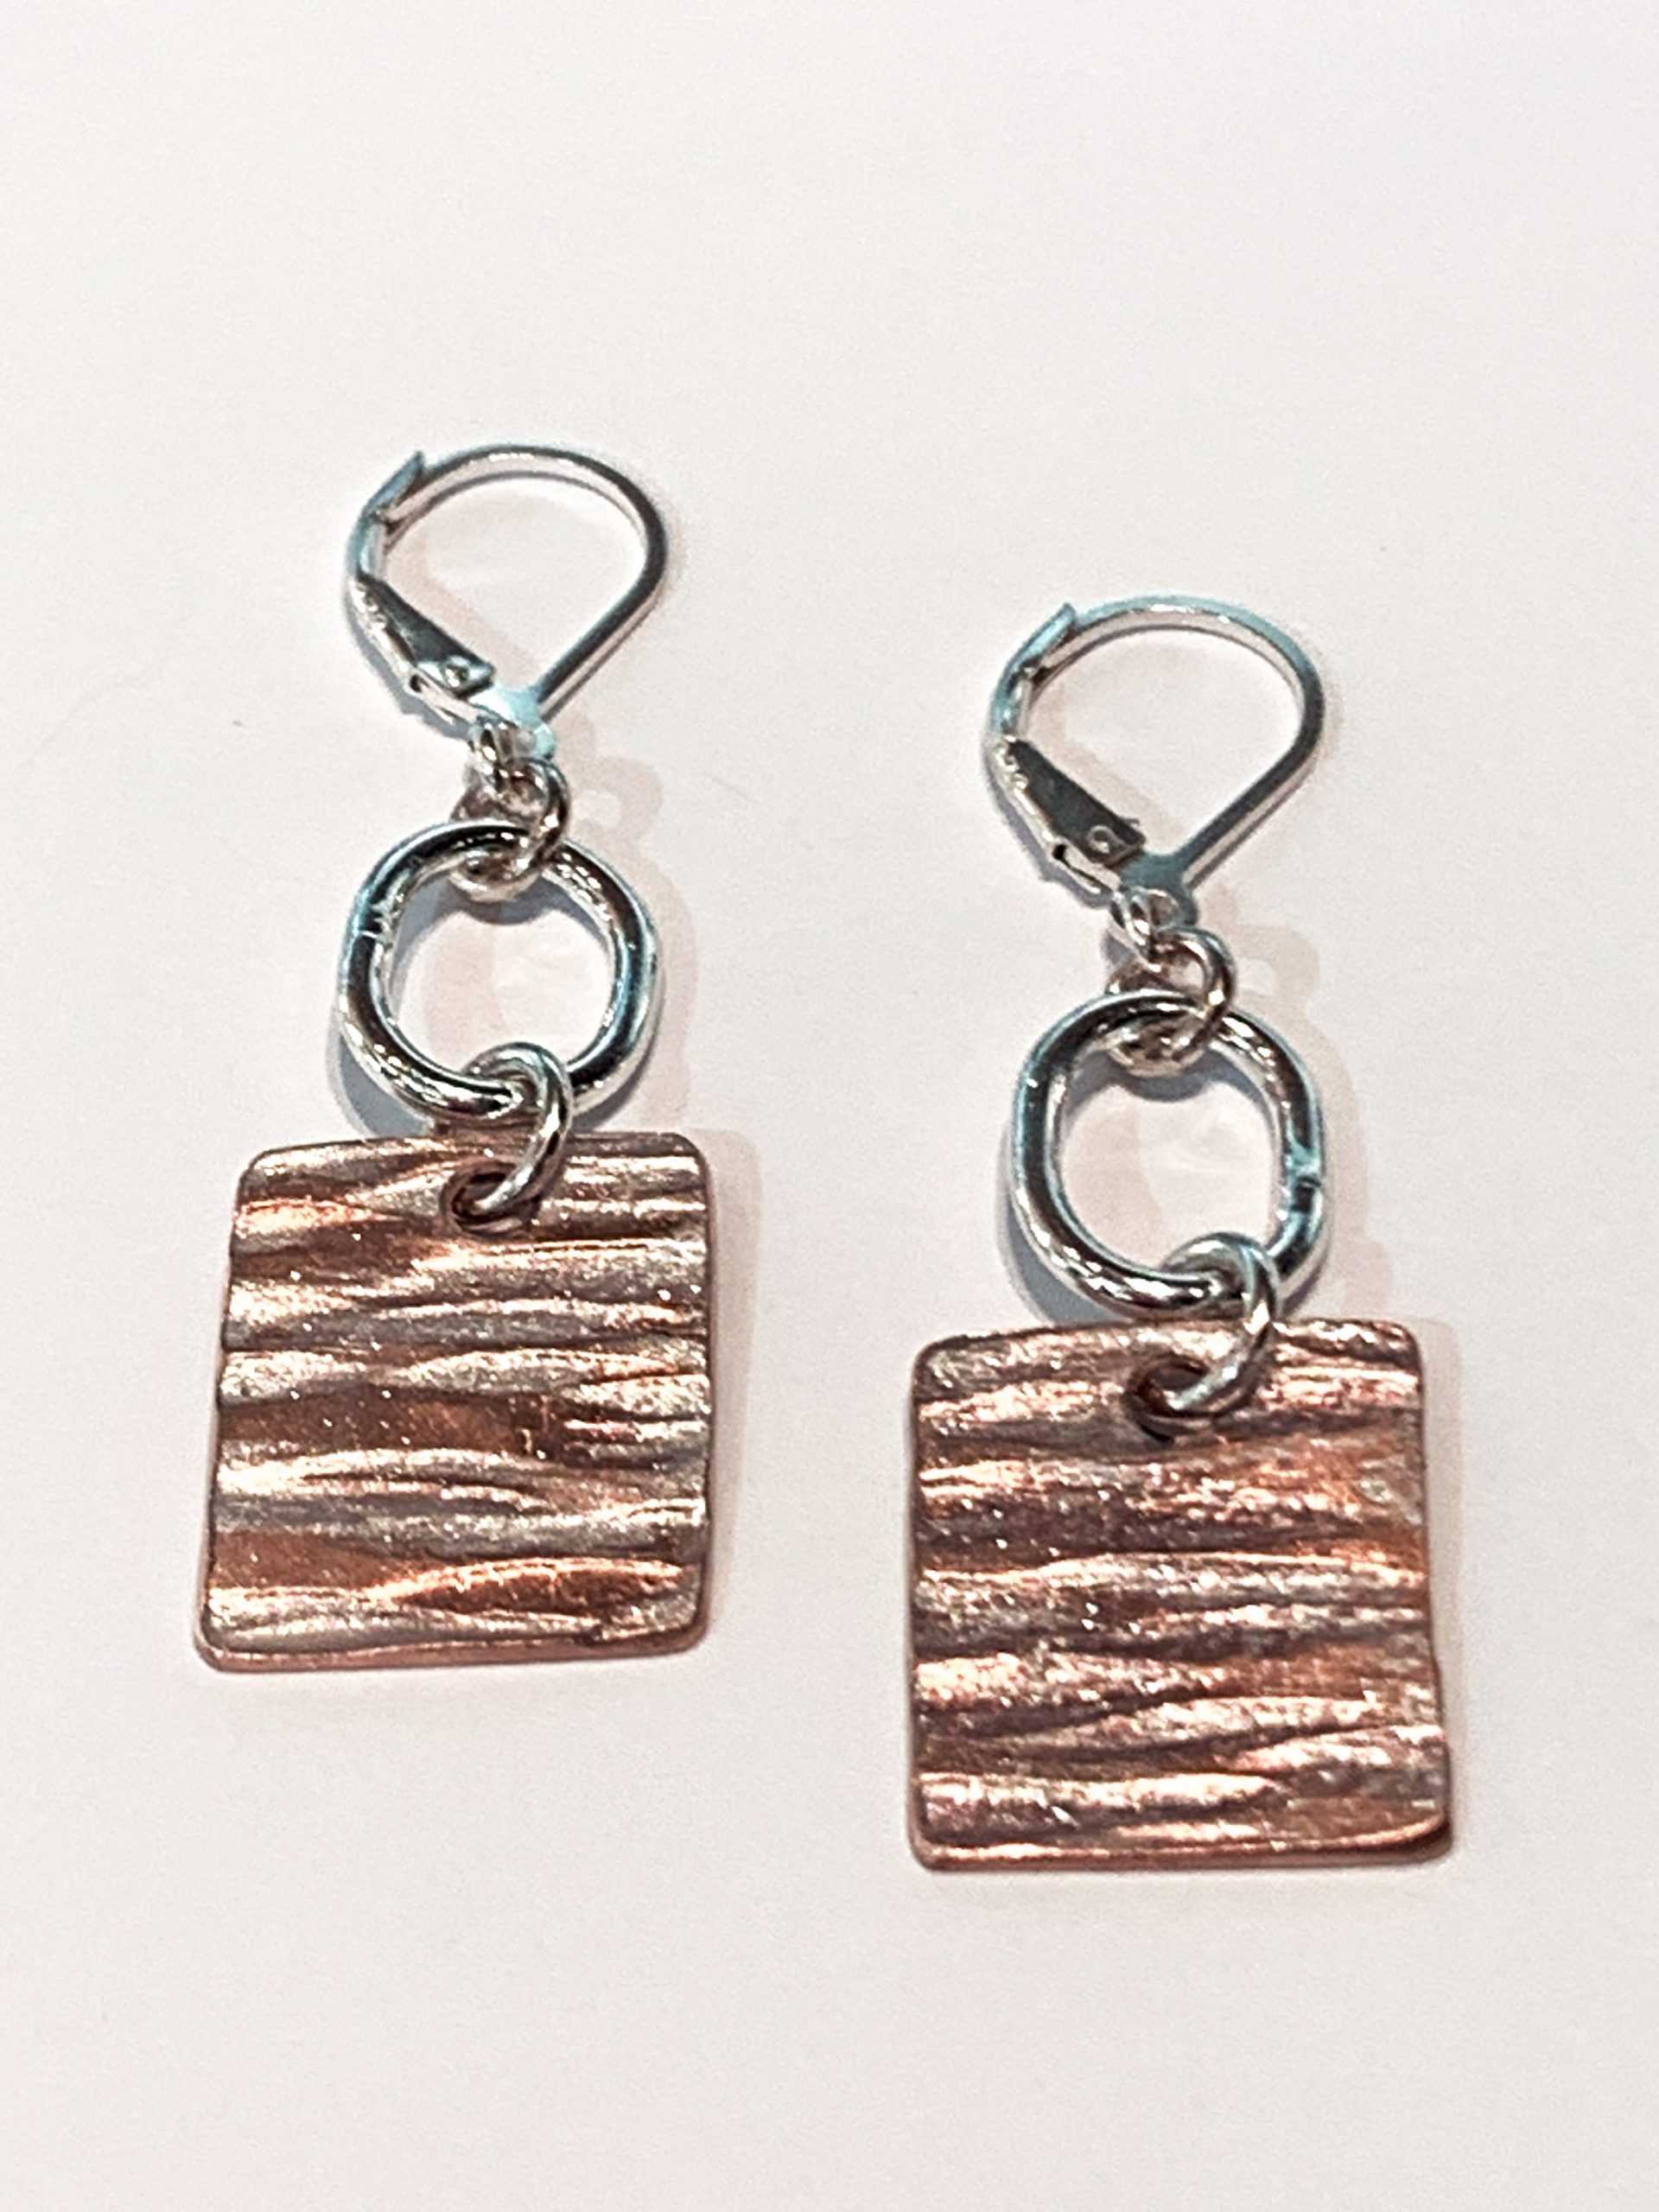 Sterling silver and pearlized copper earrings by Karyn Chopik | Effusion Art Gallery + Cast Glass Studio, Invermere BC